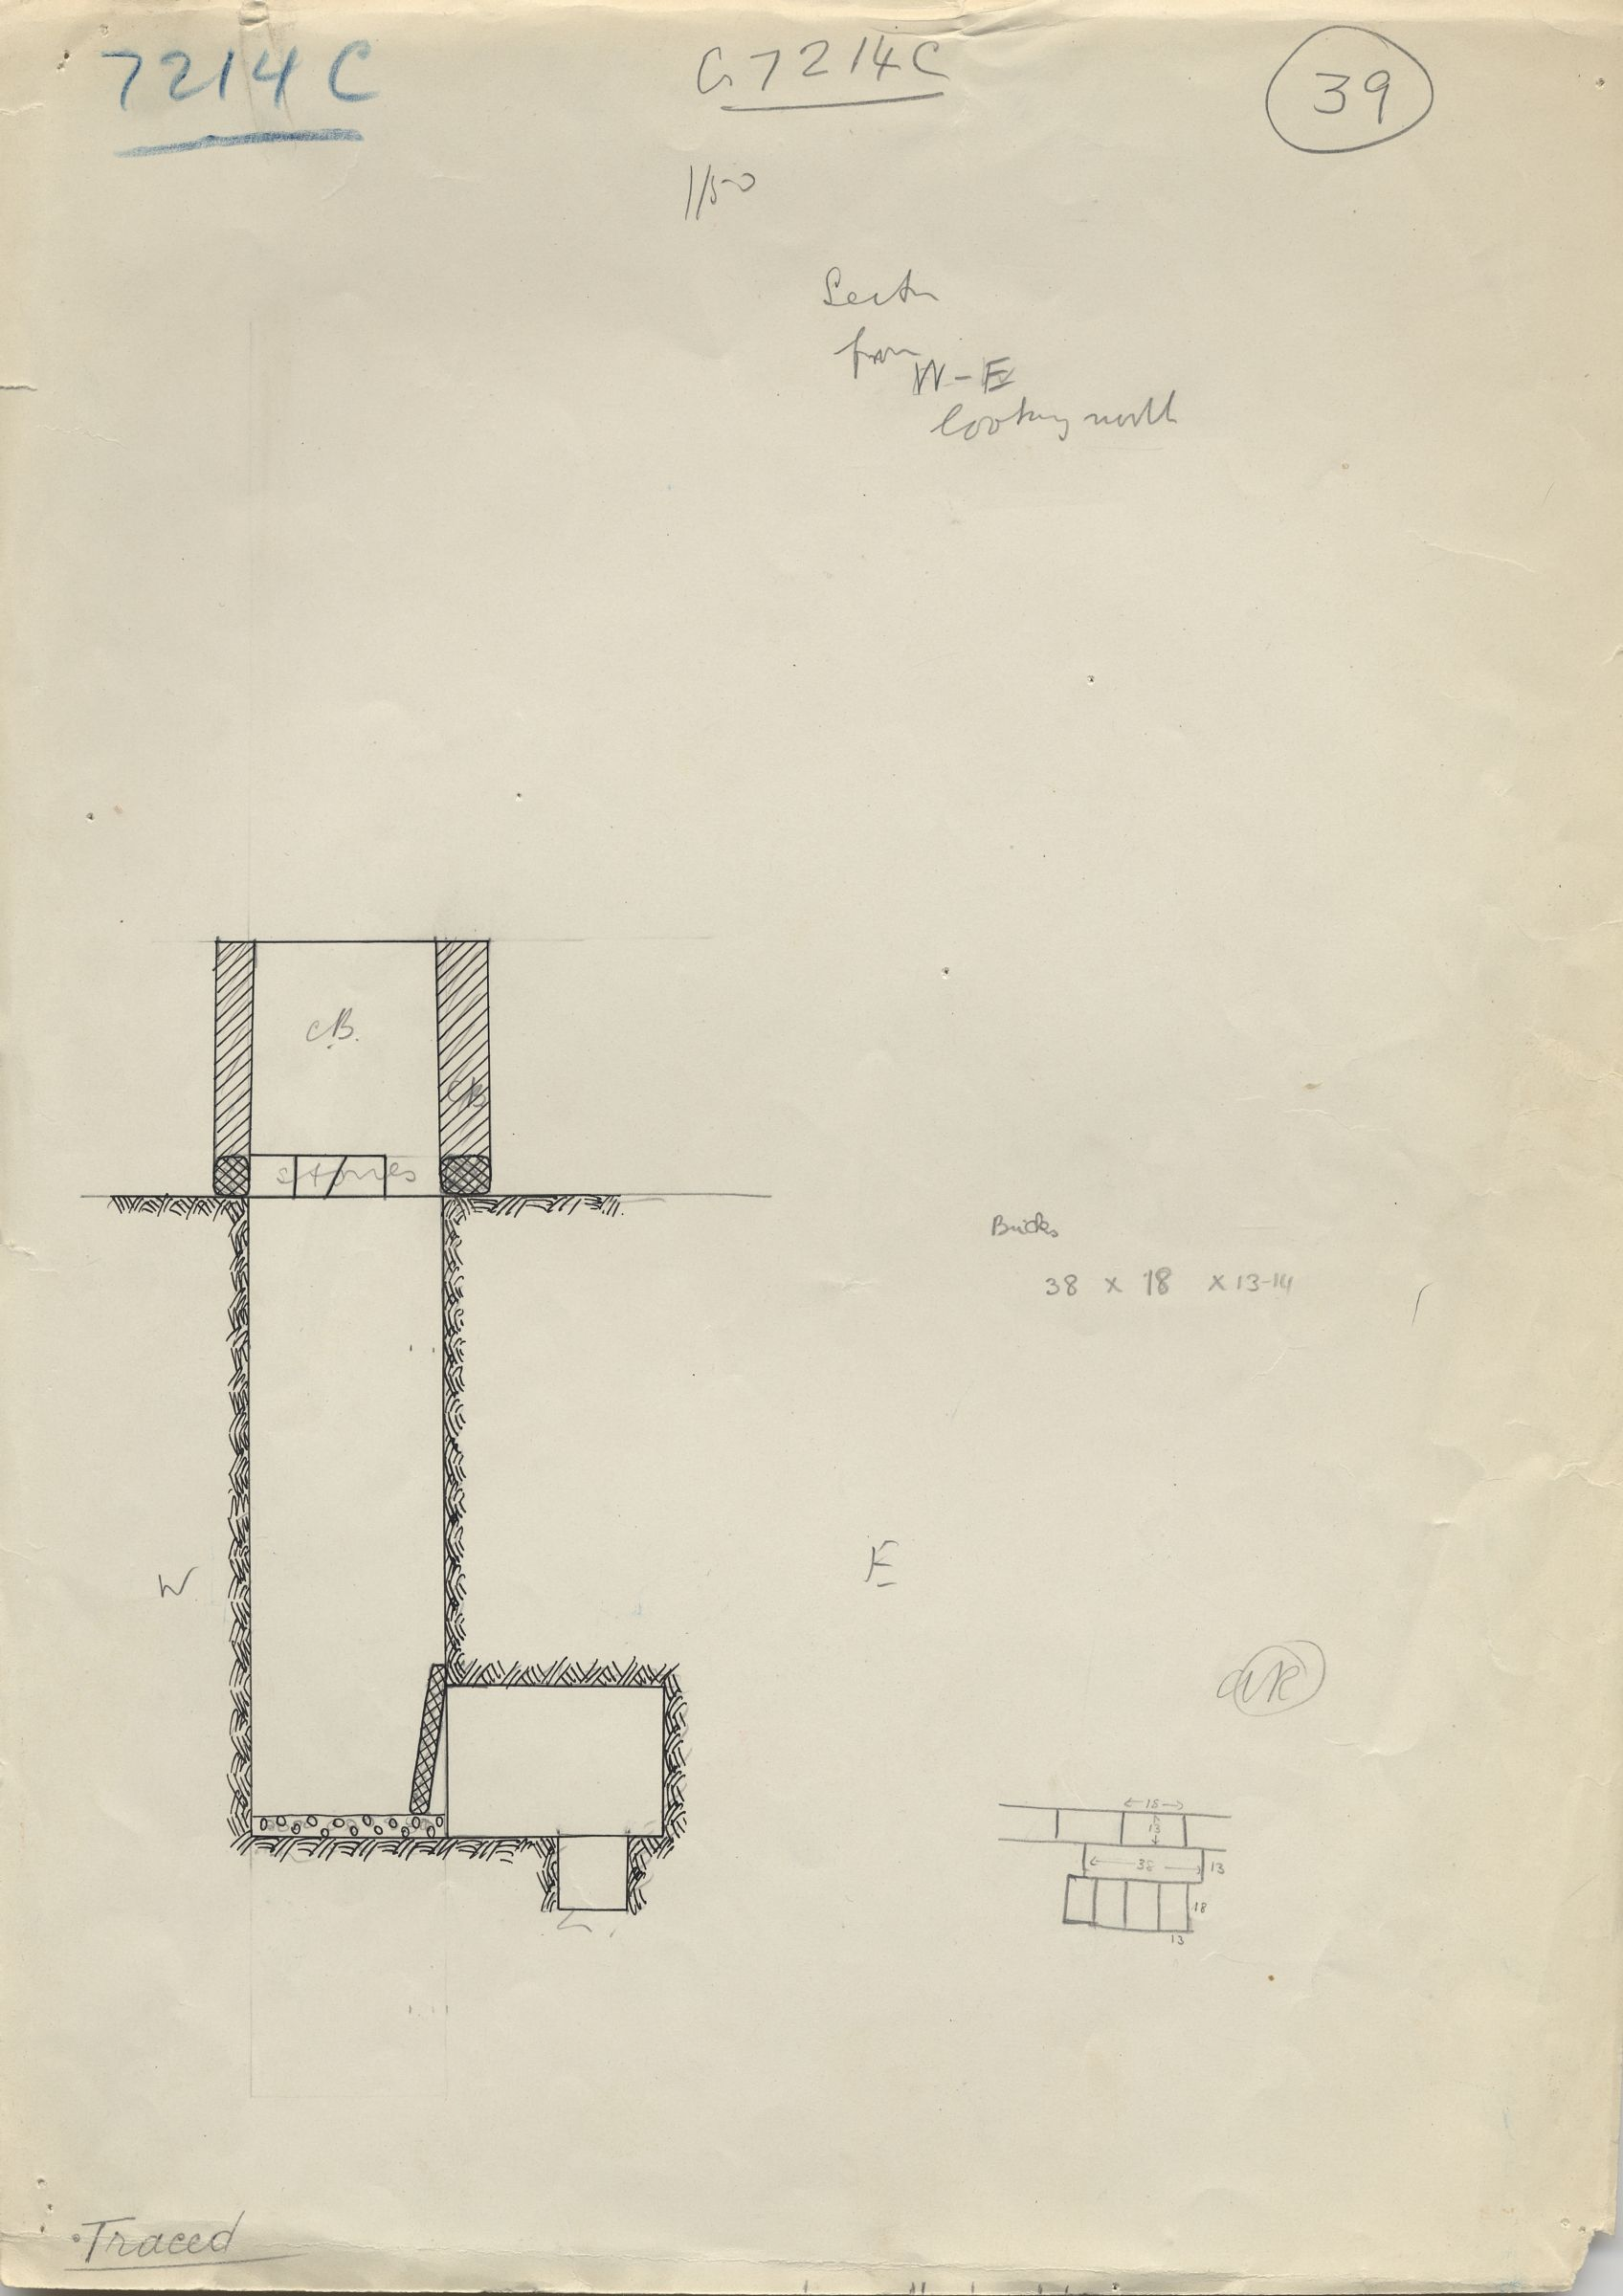 Maps and plans: G 7214, Shaft C